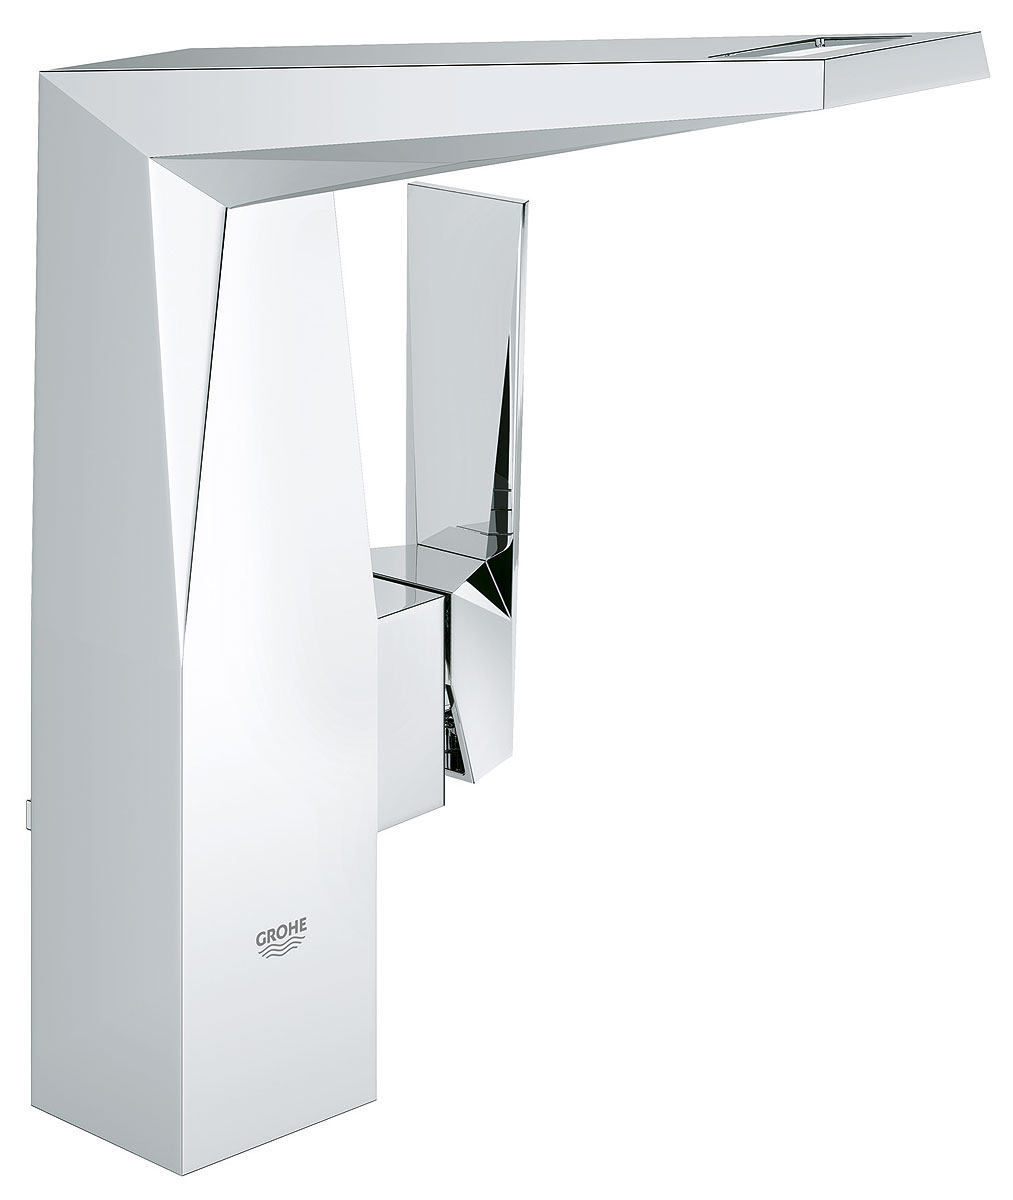 grohe mitigeur lavabo allure brilliant 23029000. Black Bedroom Furniture Sets. Home Design Ideas